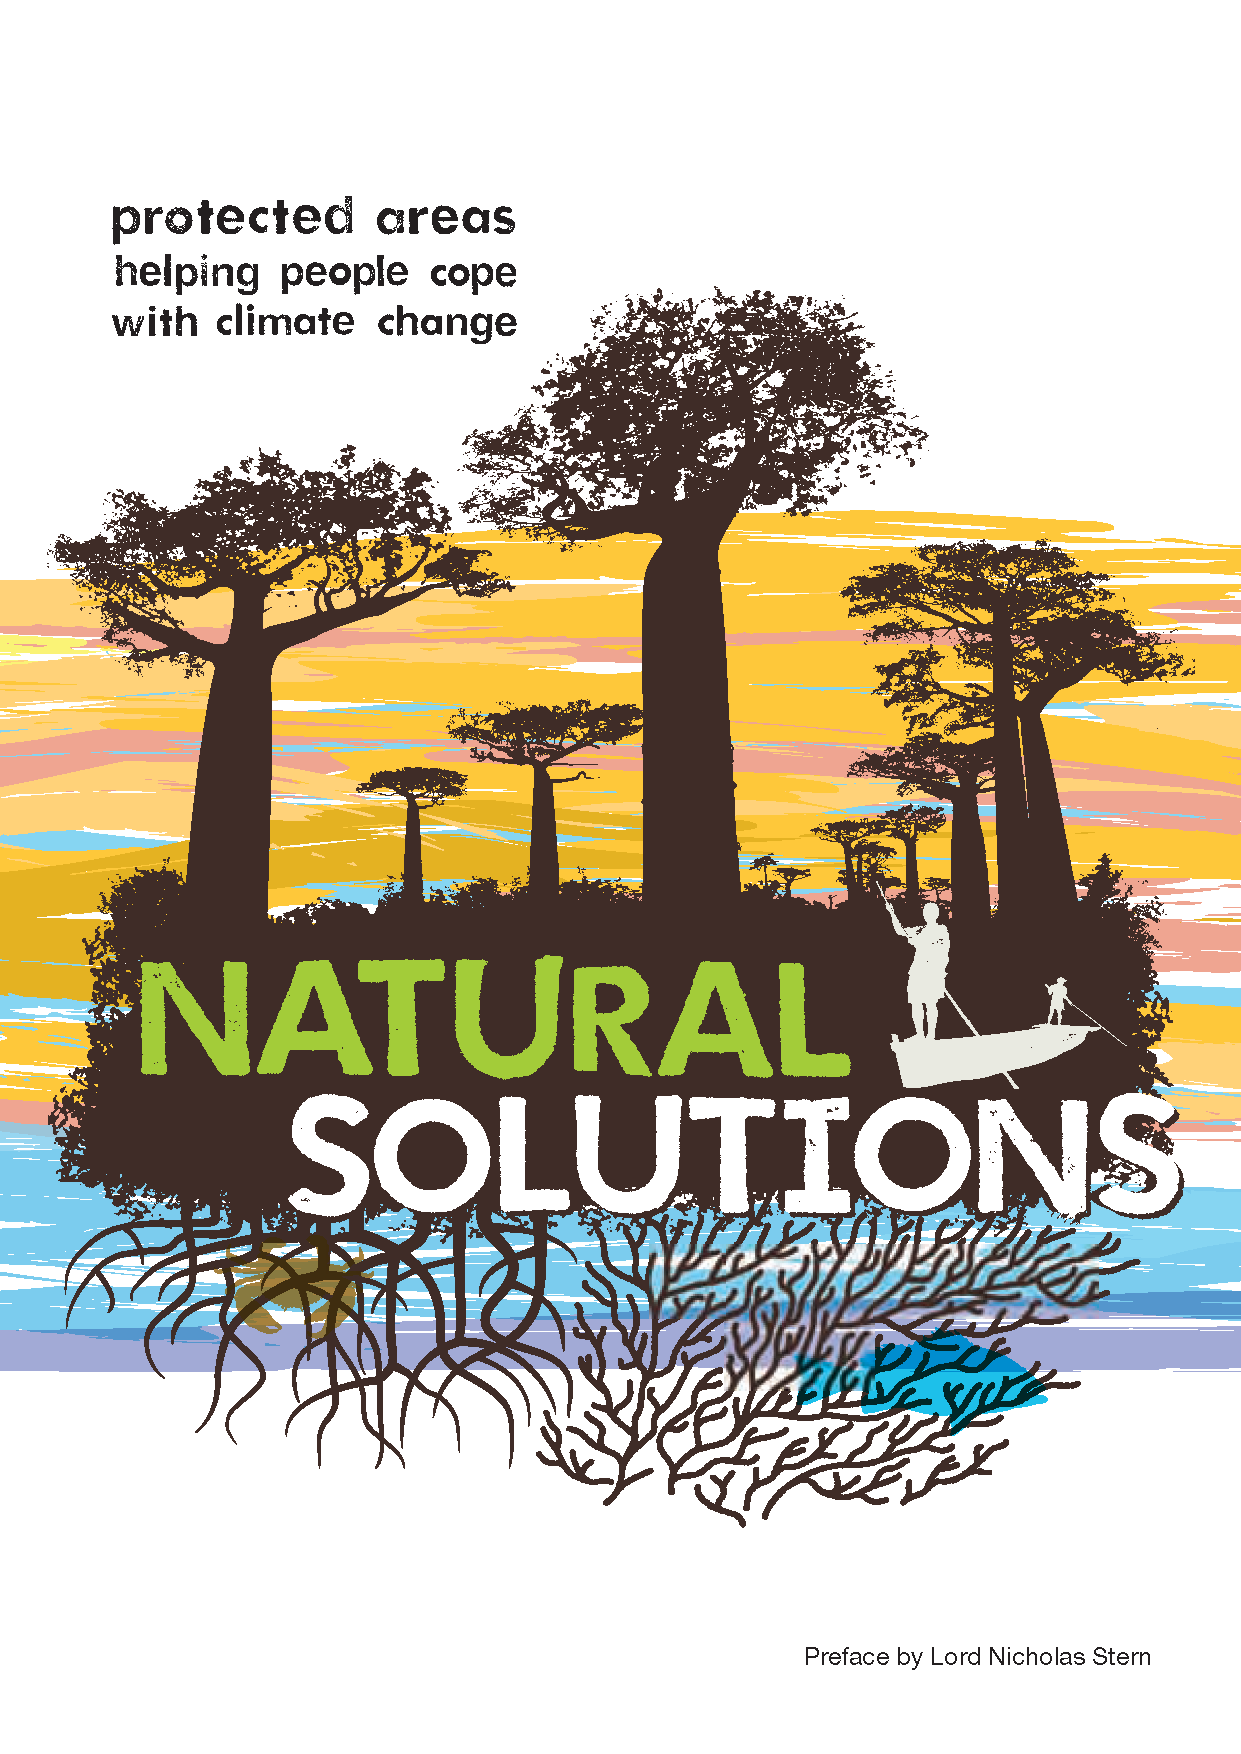 Capa da Natural Solutions - Protected areas helping people cope with climate change